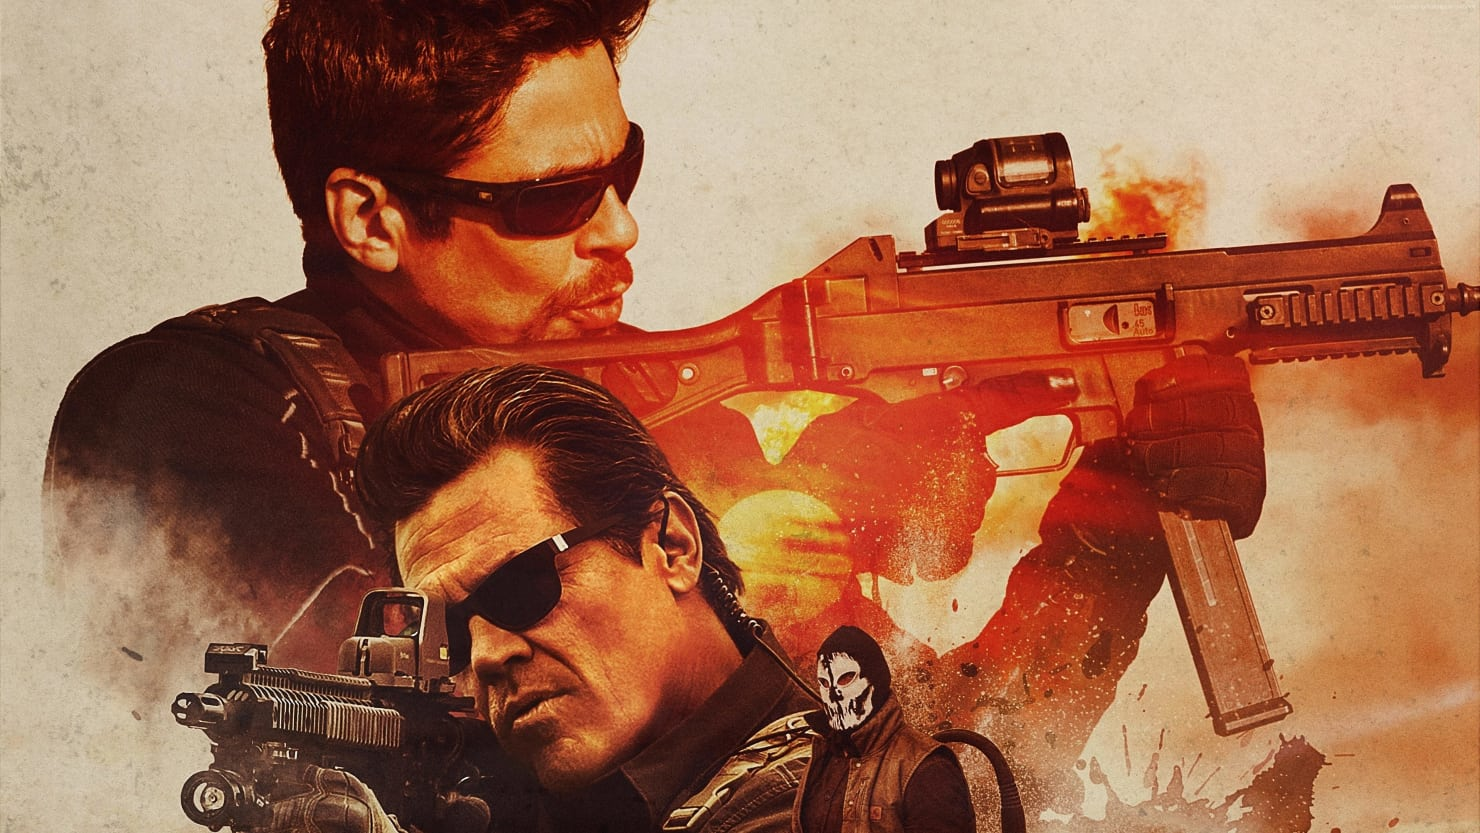 Day-of-the-Soldado-Poster_ht2qh11 Sicario: Day of the Soldado